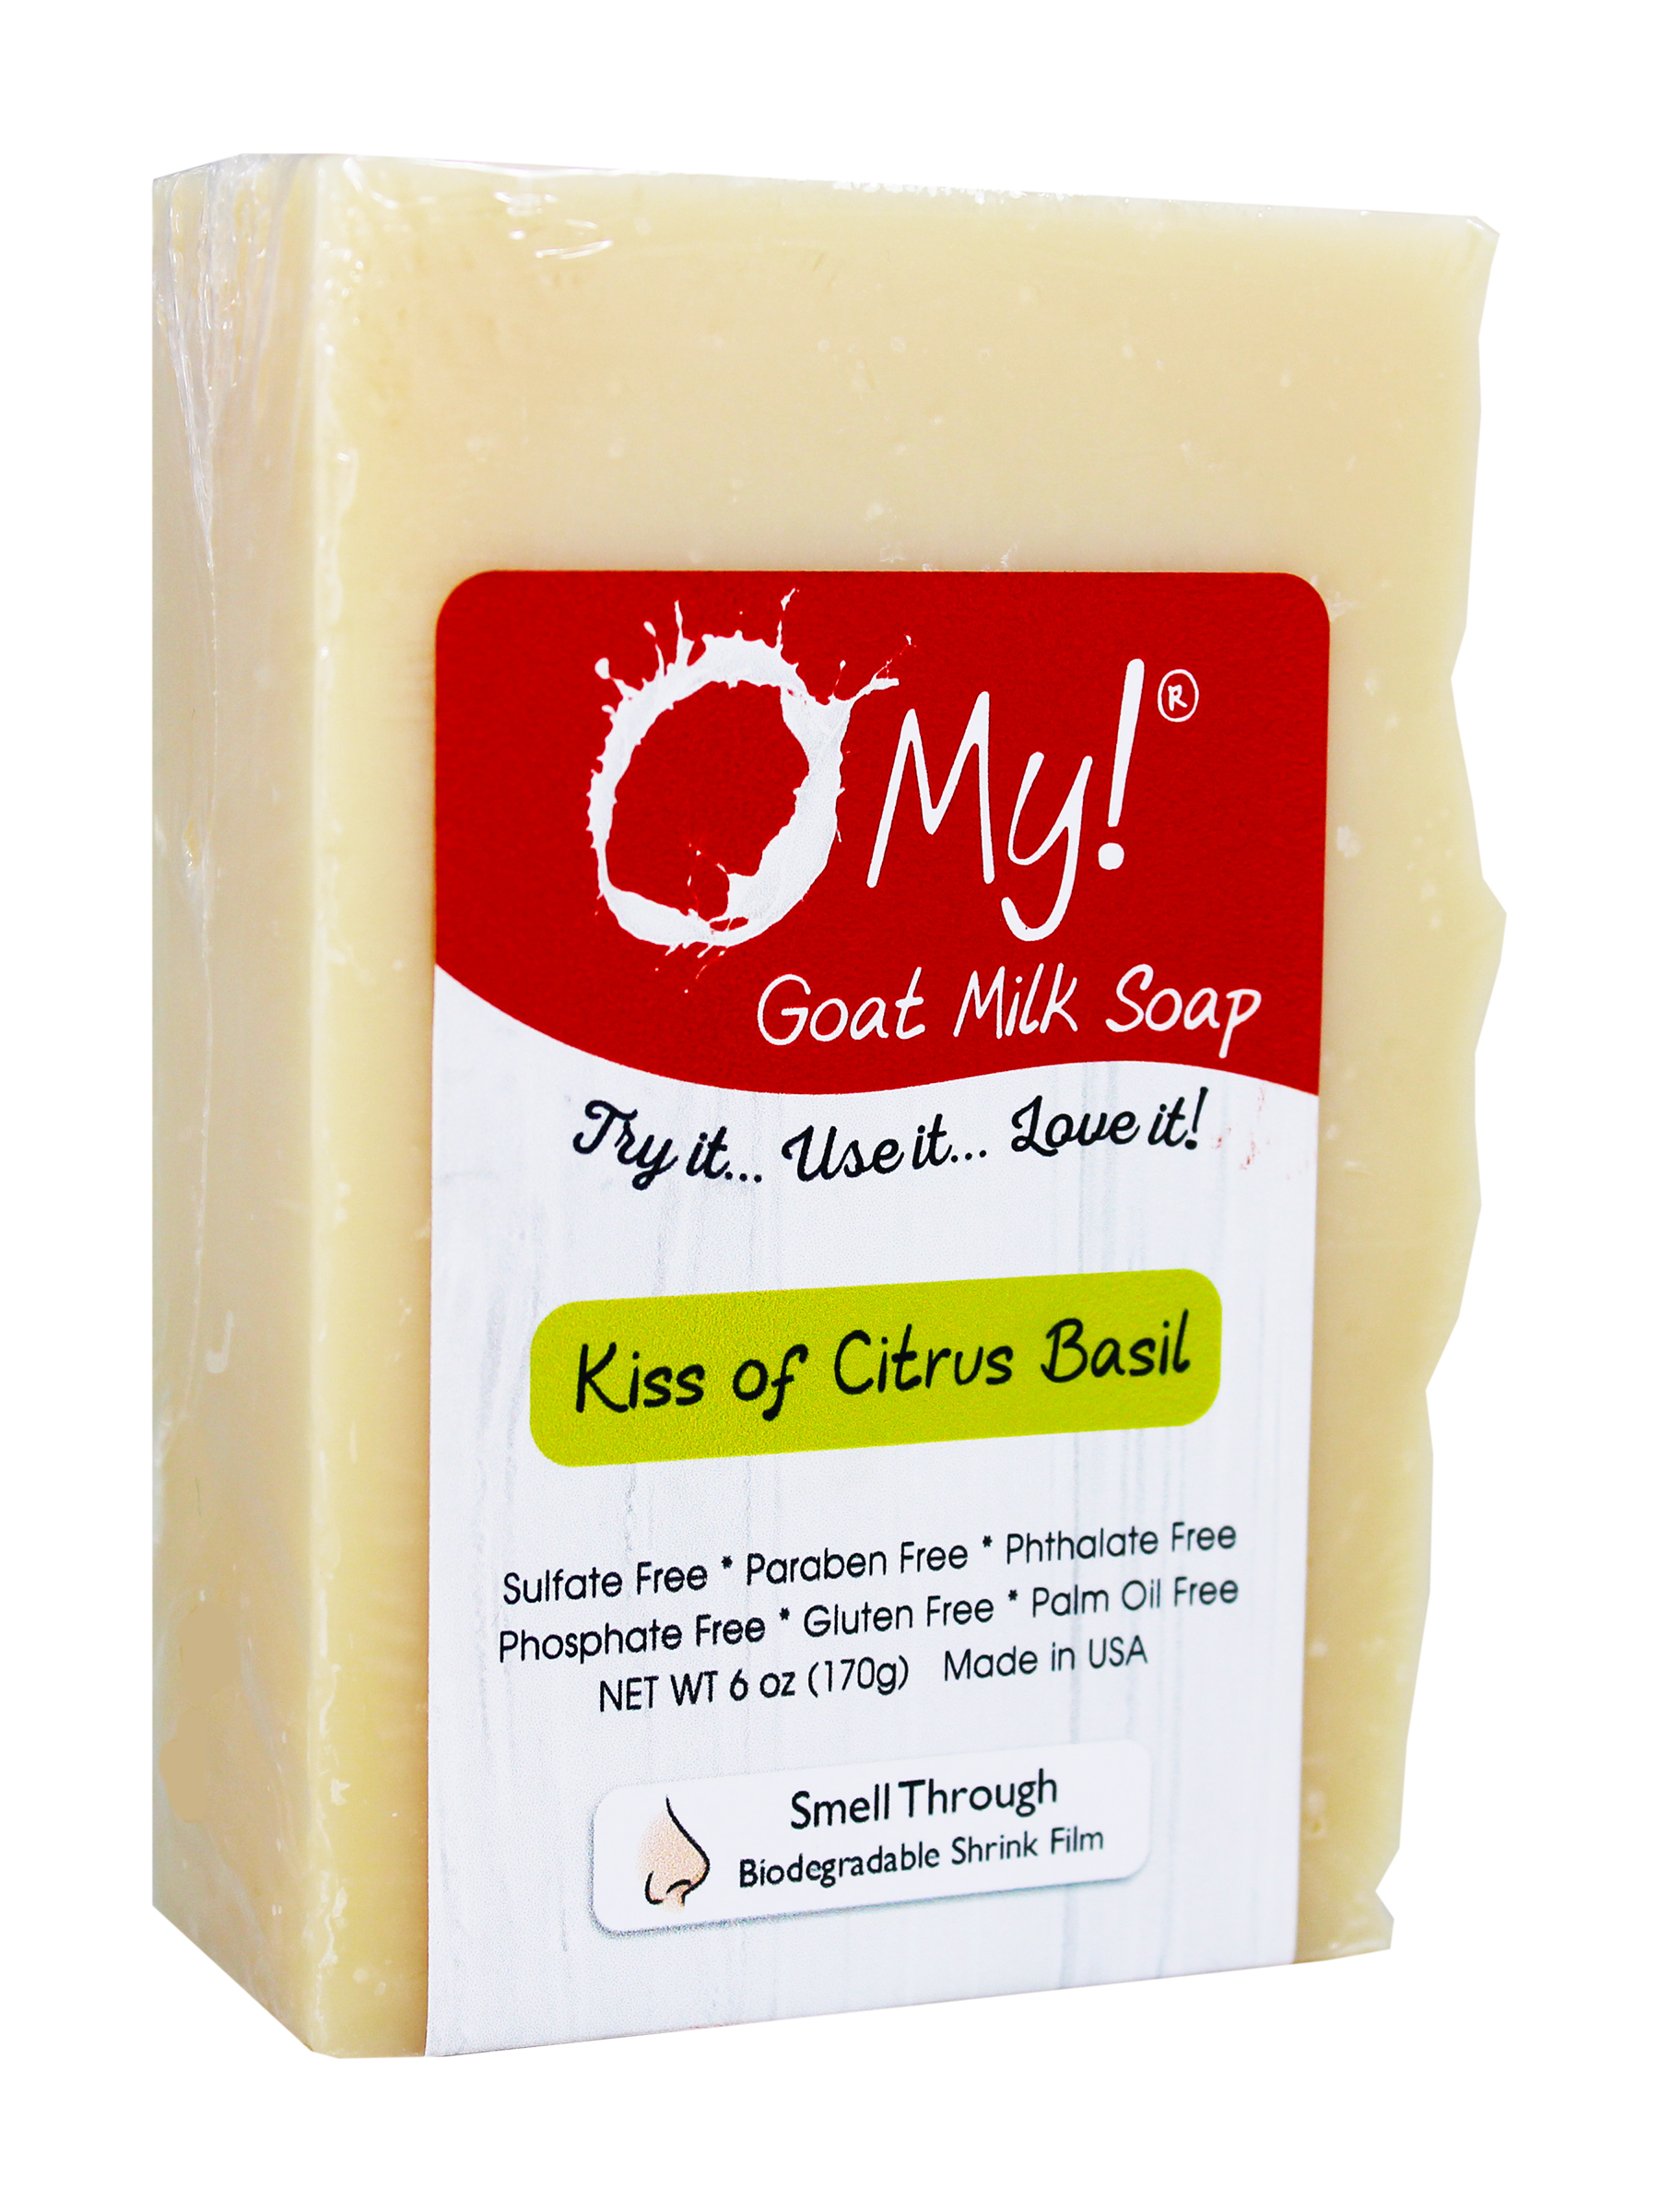 O My! Goat Milk Soap 6oz Bar - Kiss of Citrus Basil | Made with Farm-Fresh Goat Milk | Moisturizes dry skin | Gently Exfoliates | Paraben Free | Leaping Bunny Certified | Made in USA